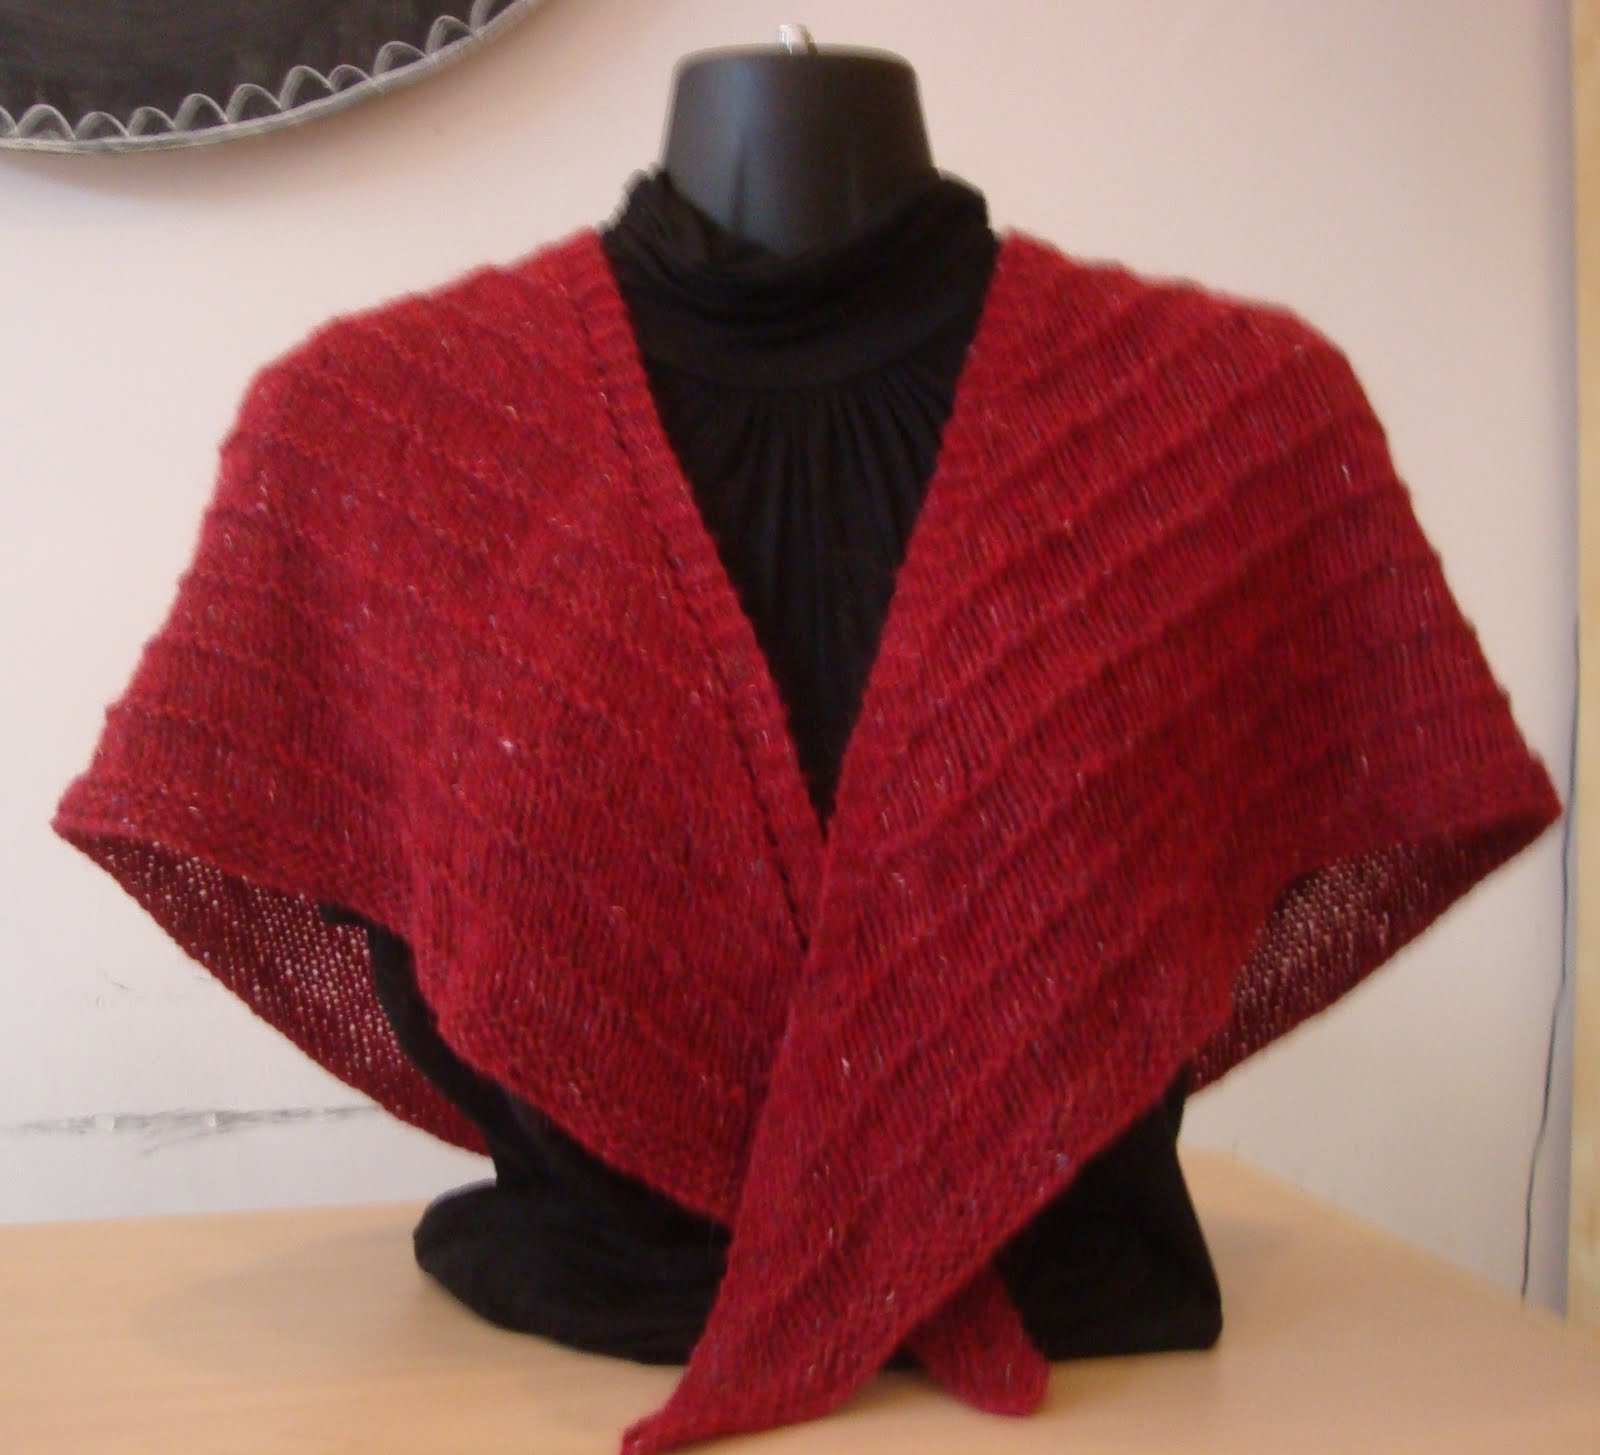 Free Knitting Pattern For Triangular Shawl : Triangle Shawl Free Pattern   Design Patterns